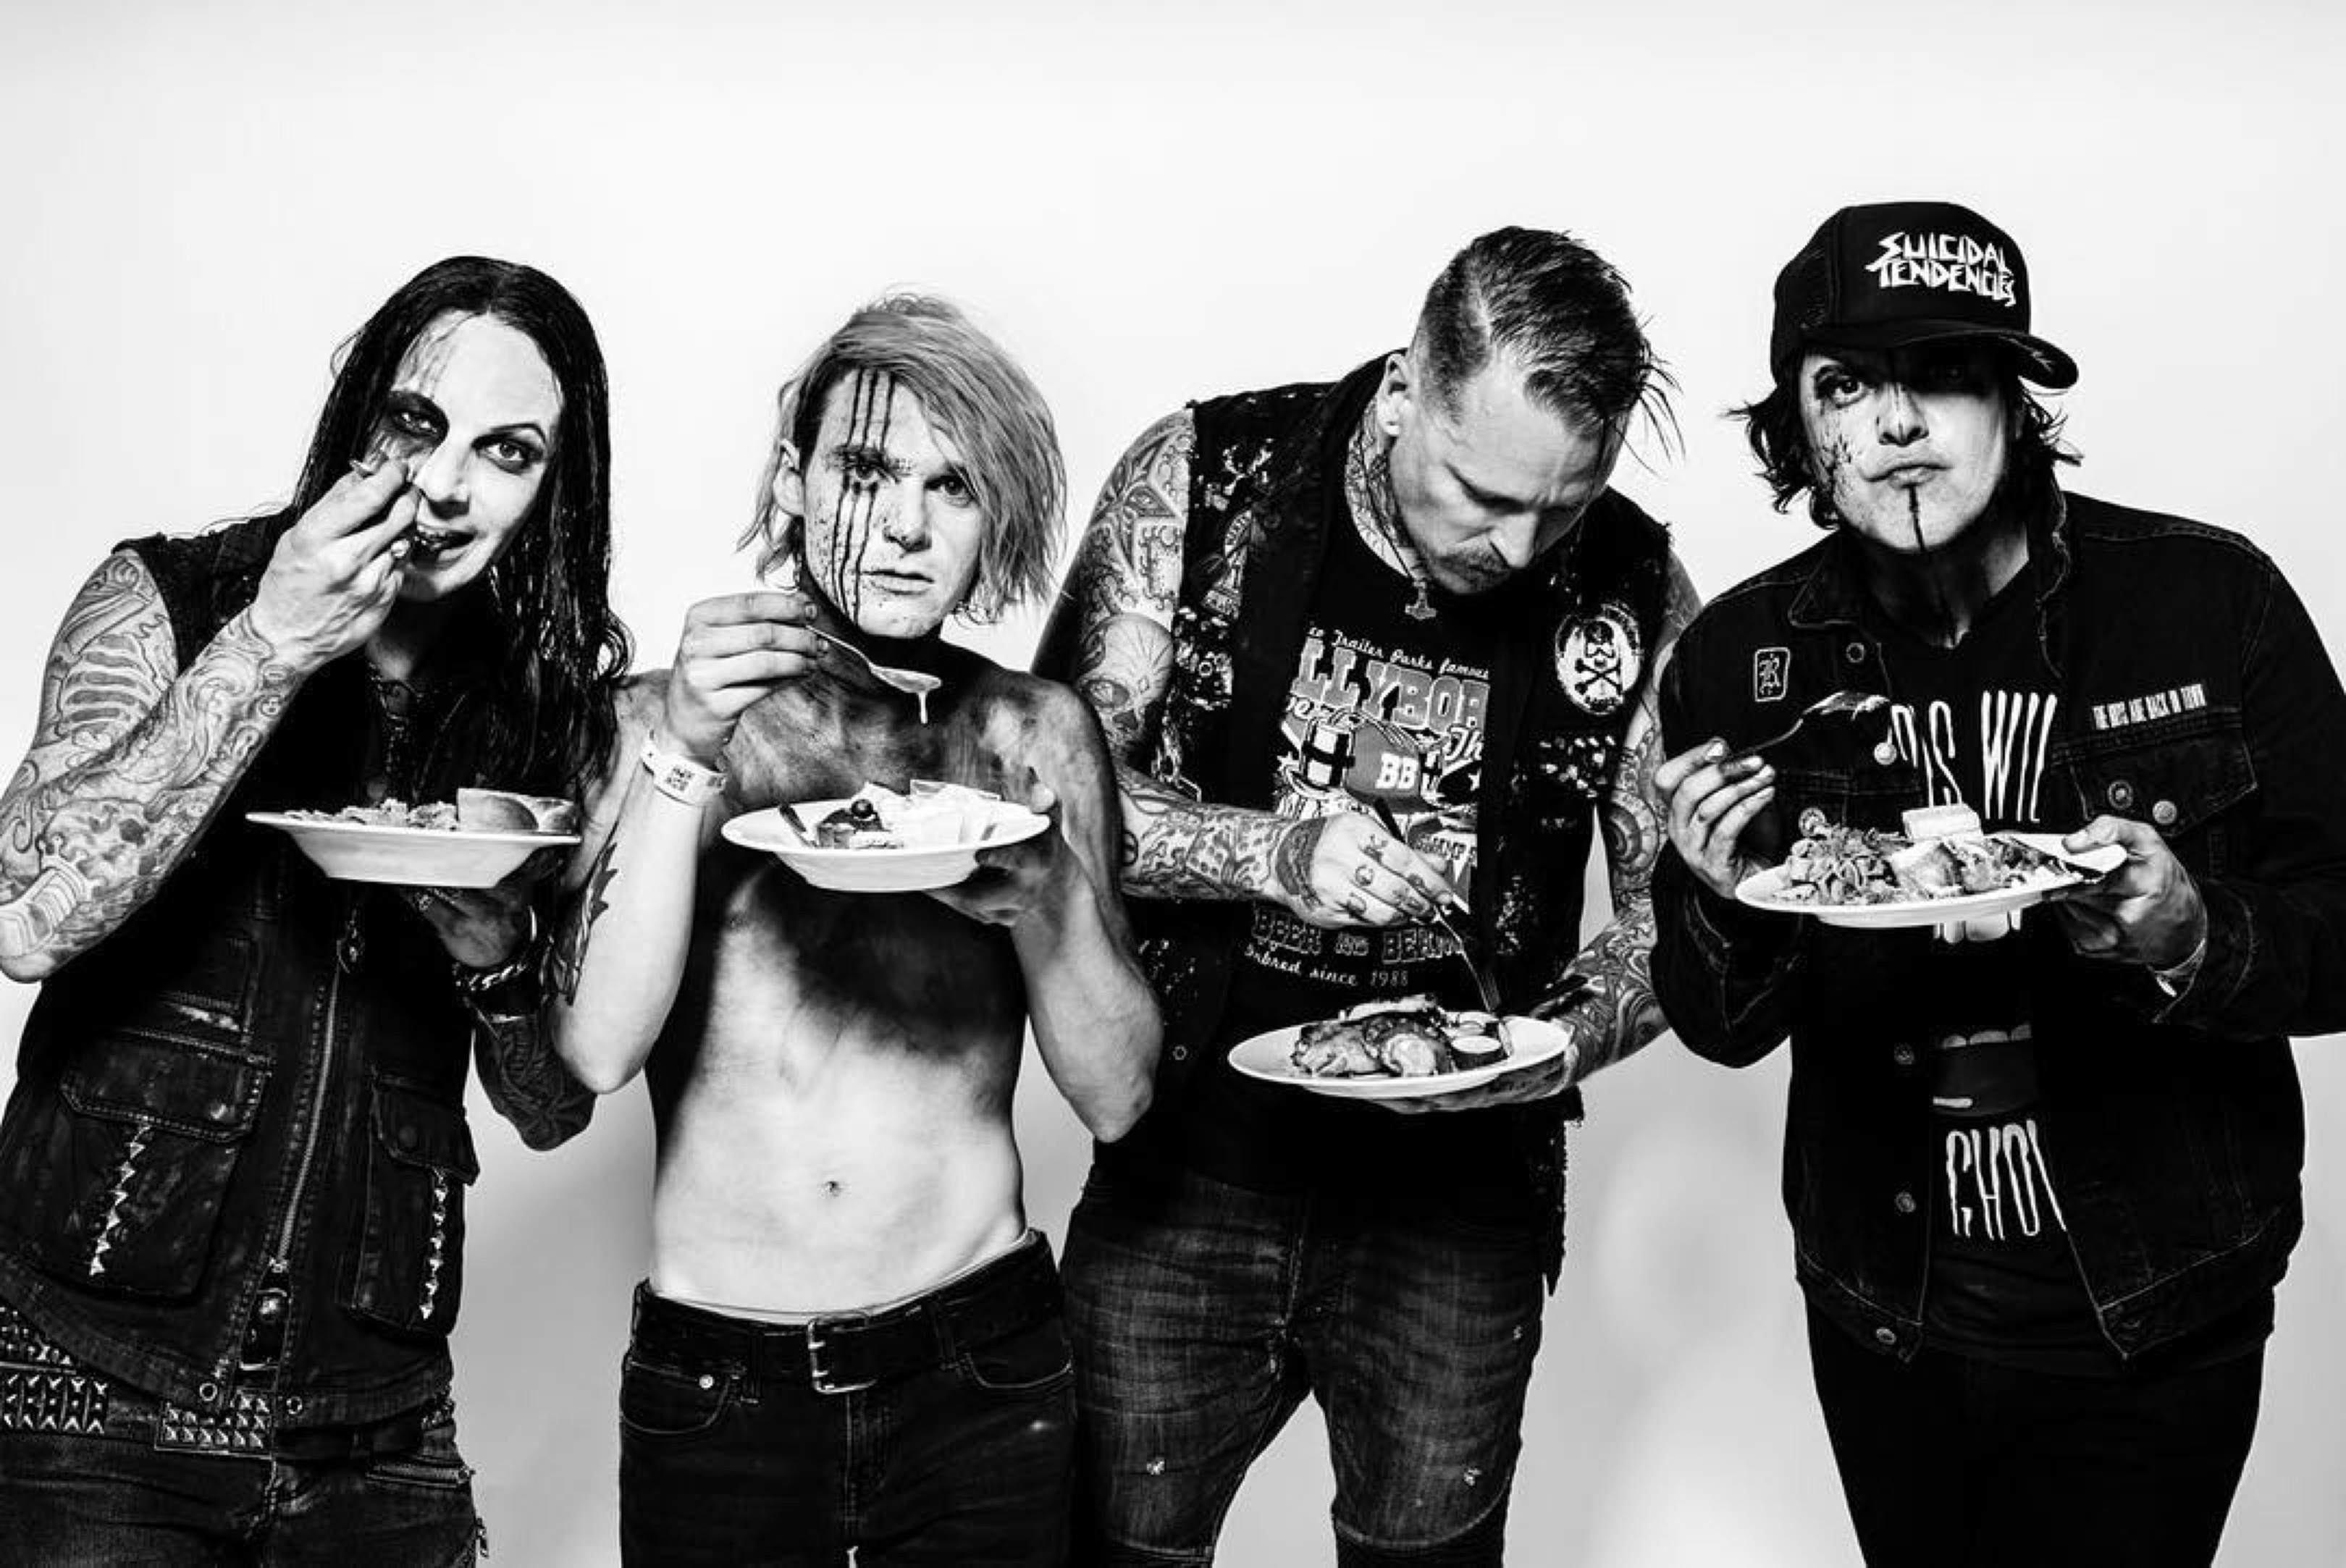 Combichrist, Silver Snakes, Psyborum